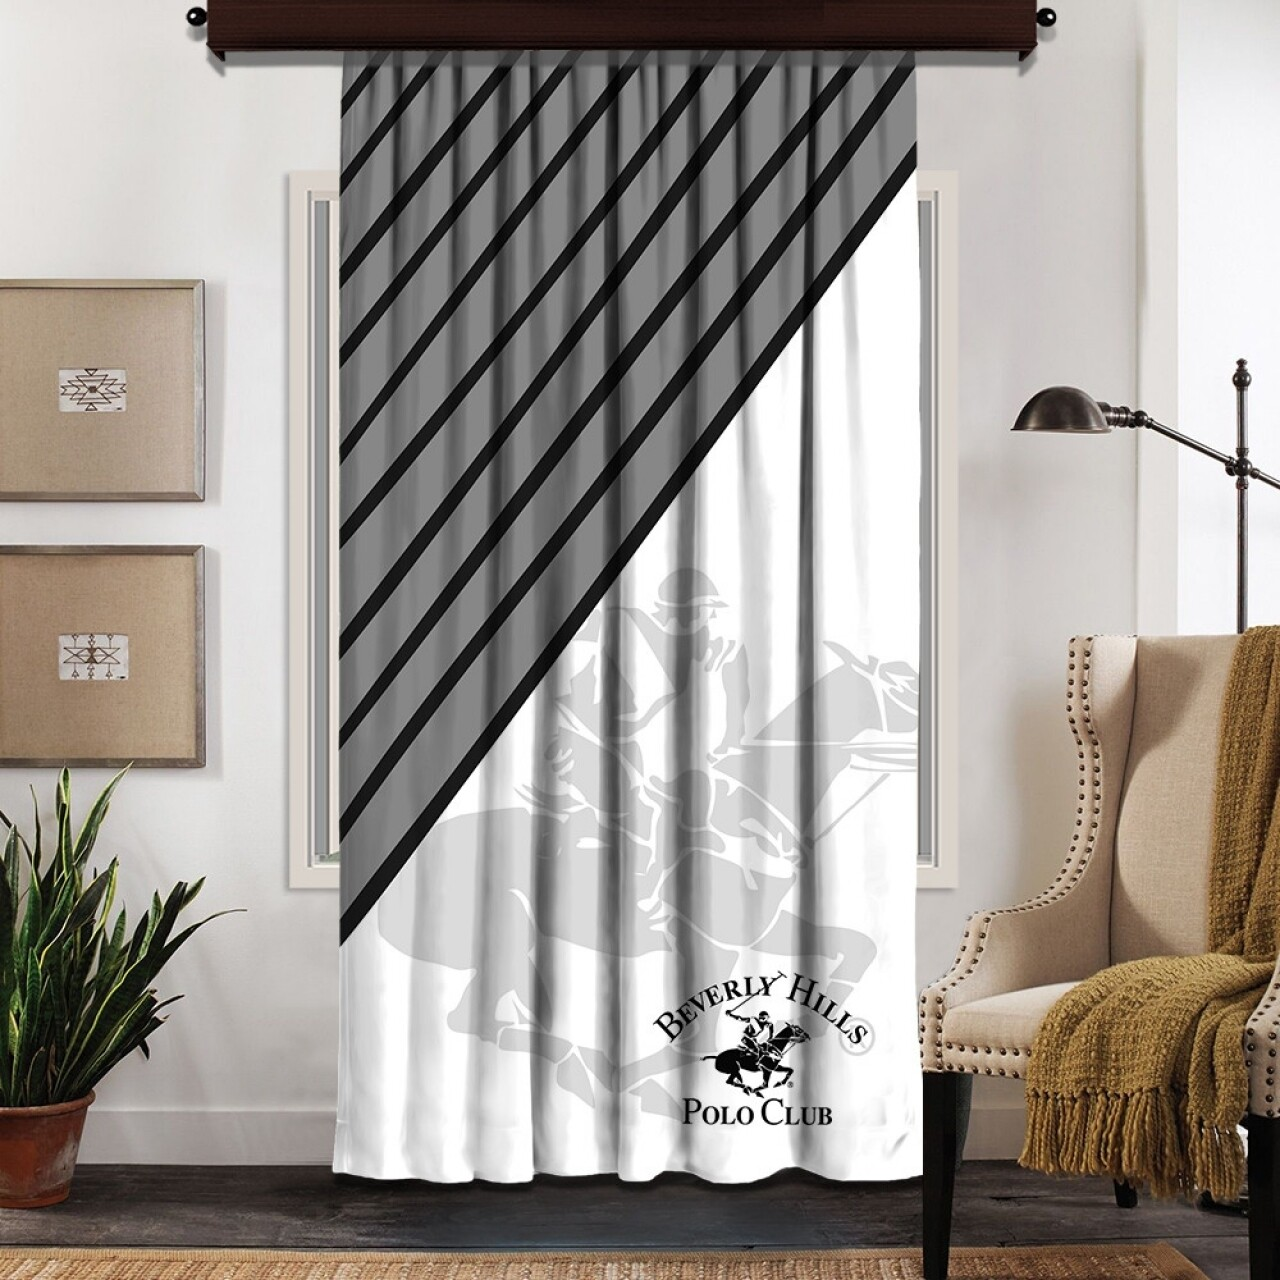 Draperie Beverly Hills Polo Club, 140x260, 100% poliester, Black/White/Grey